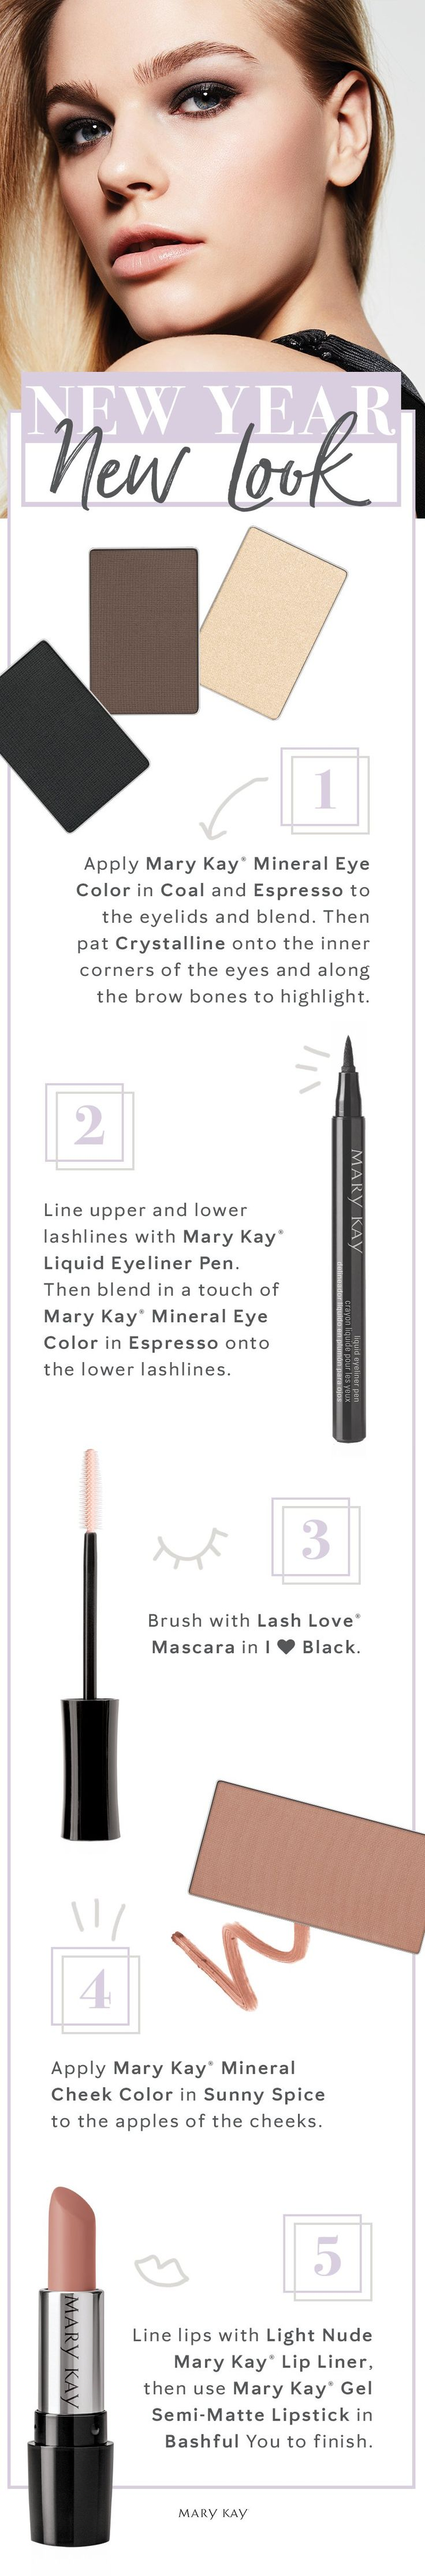 New year, fresh start. Balance bold eyes with a nude lip for a smoldering winter makeup look that turns up the heat. | Mary Kay